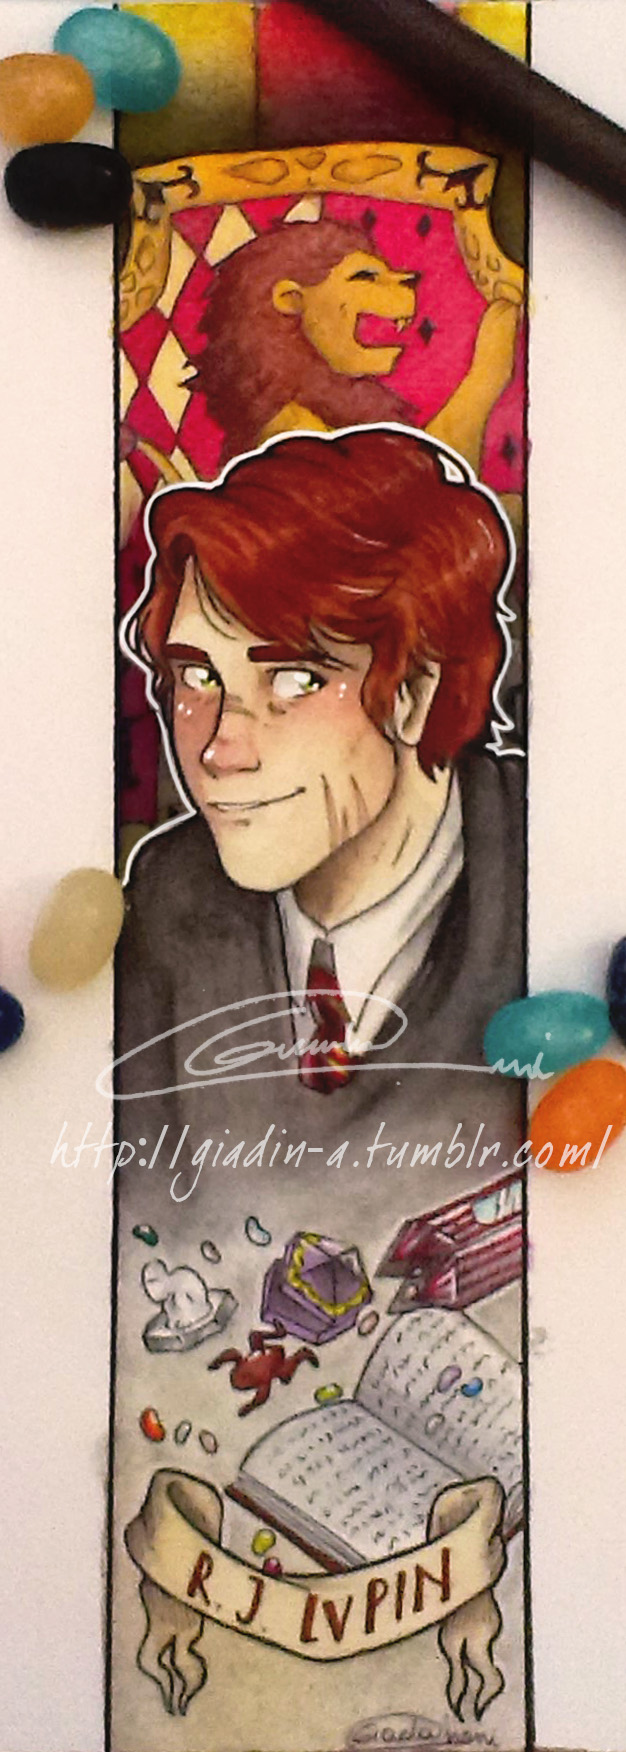 R. J. Lupin Bookmark by giadina96